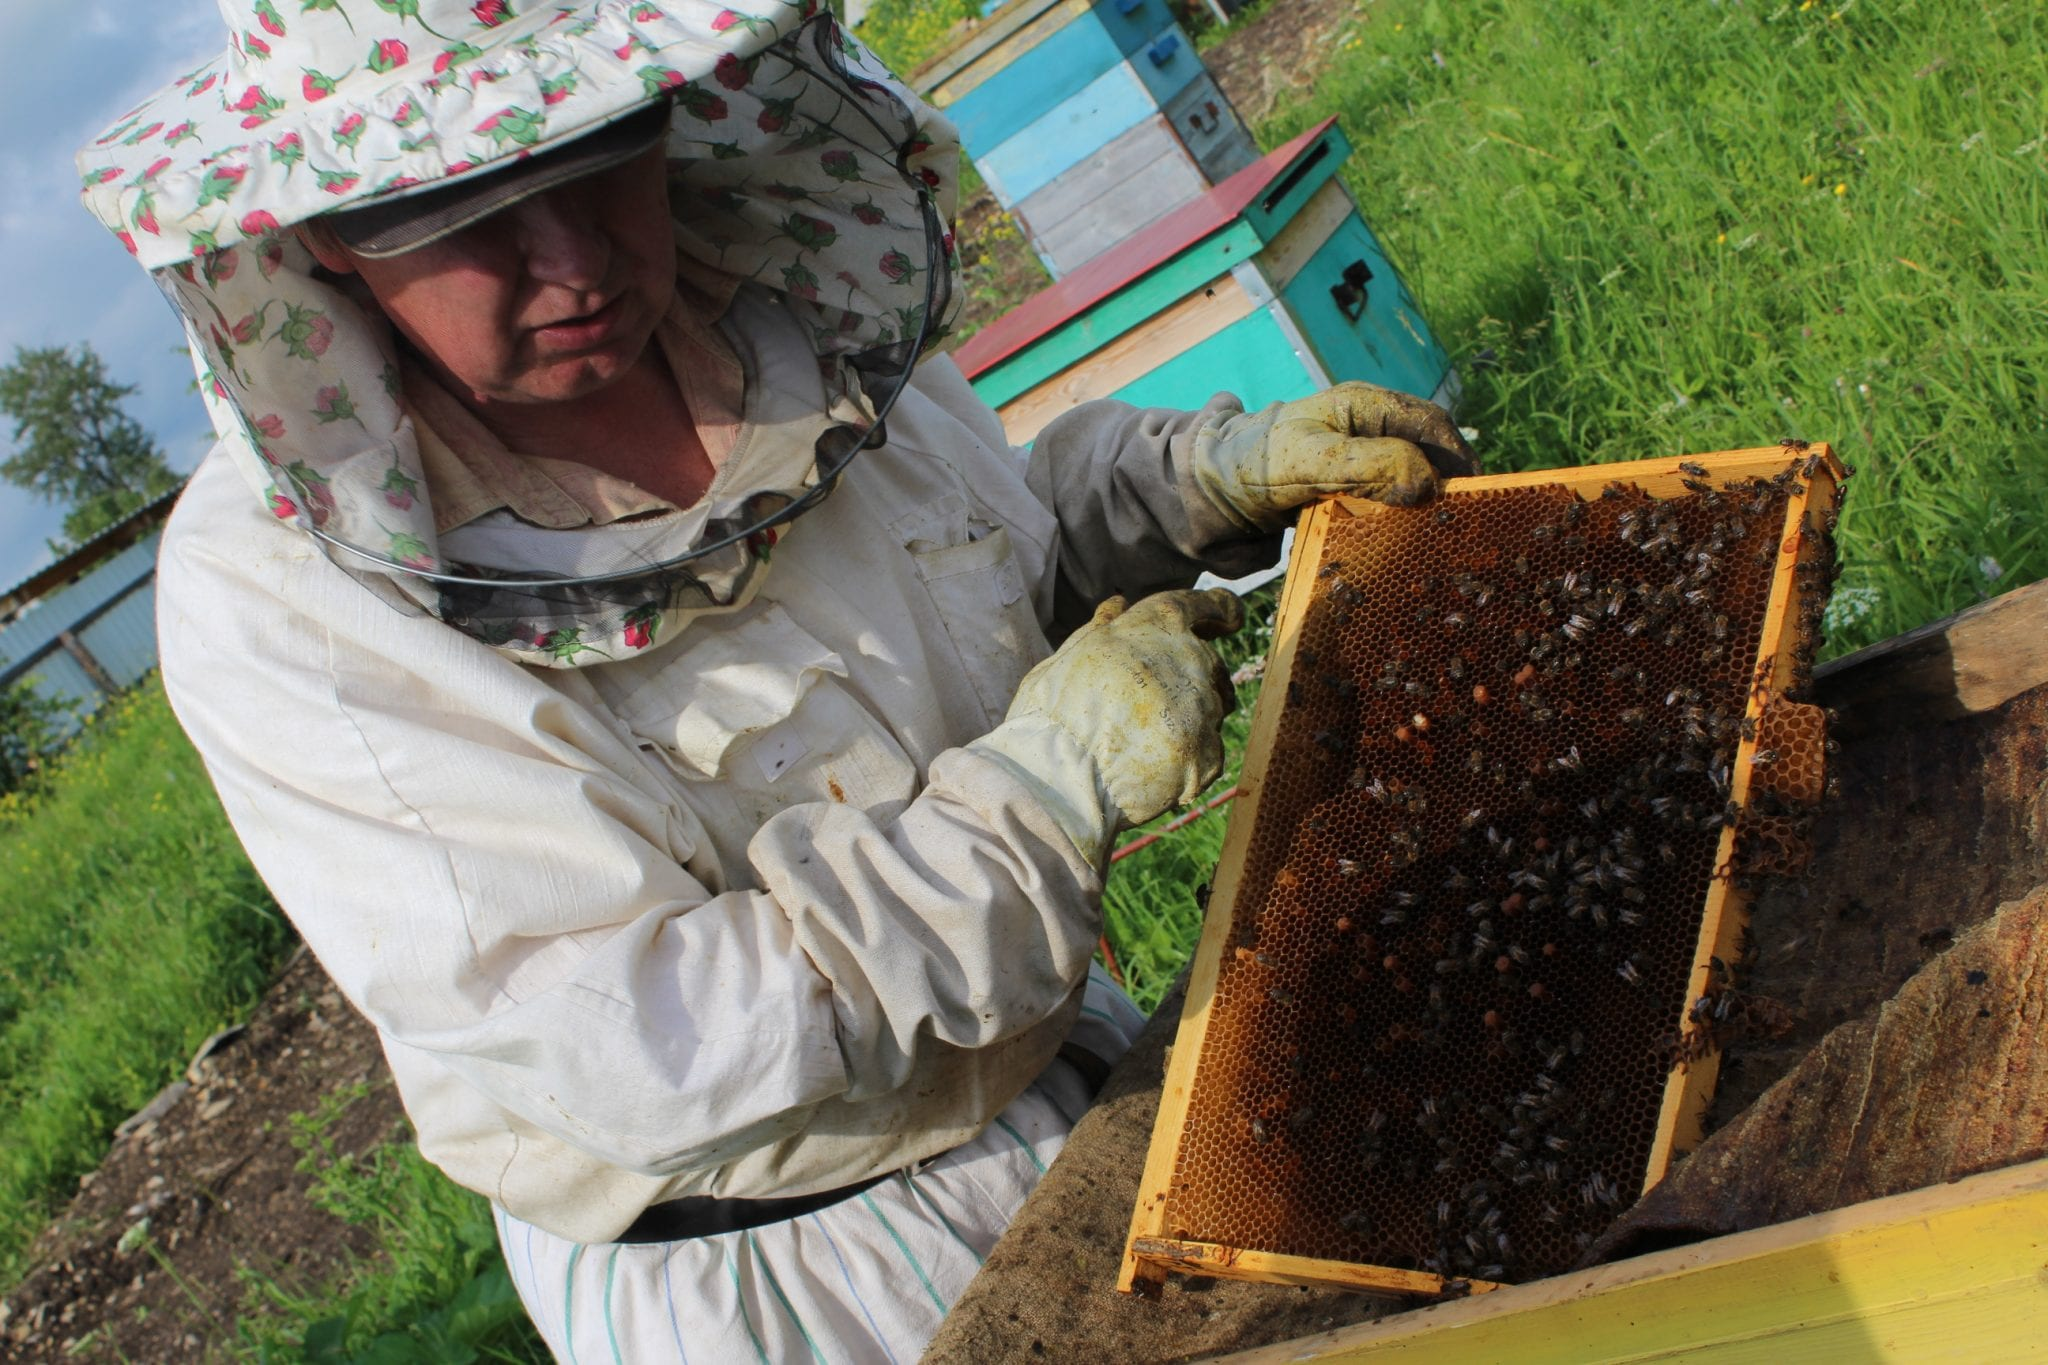 Sustainable practice - local honey factory